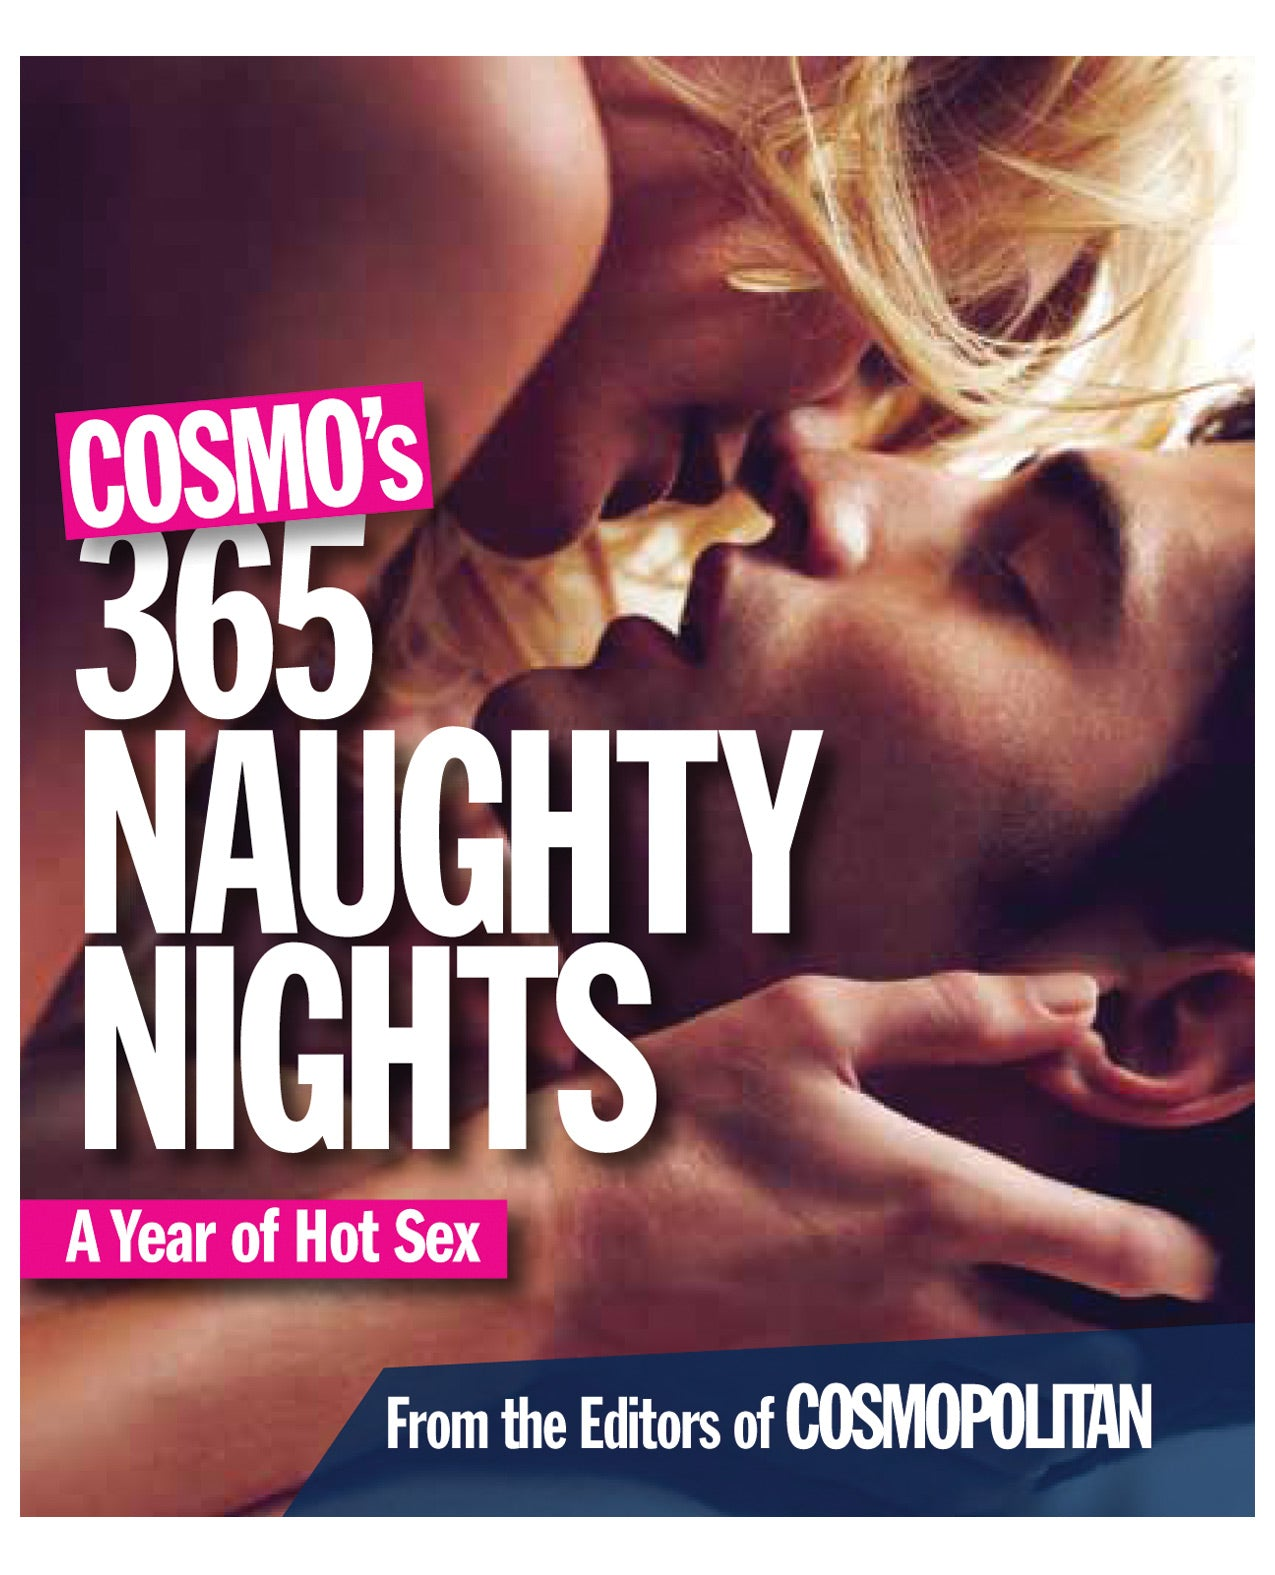 Cosmo's 365 Naughty Nights New Edition